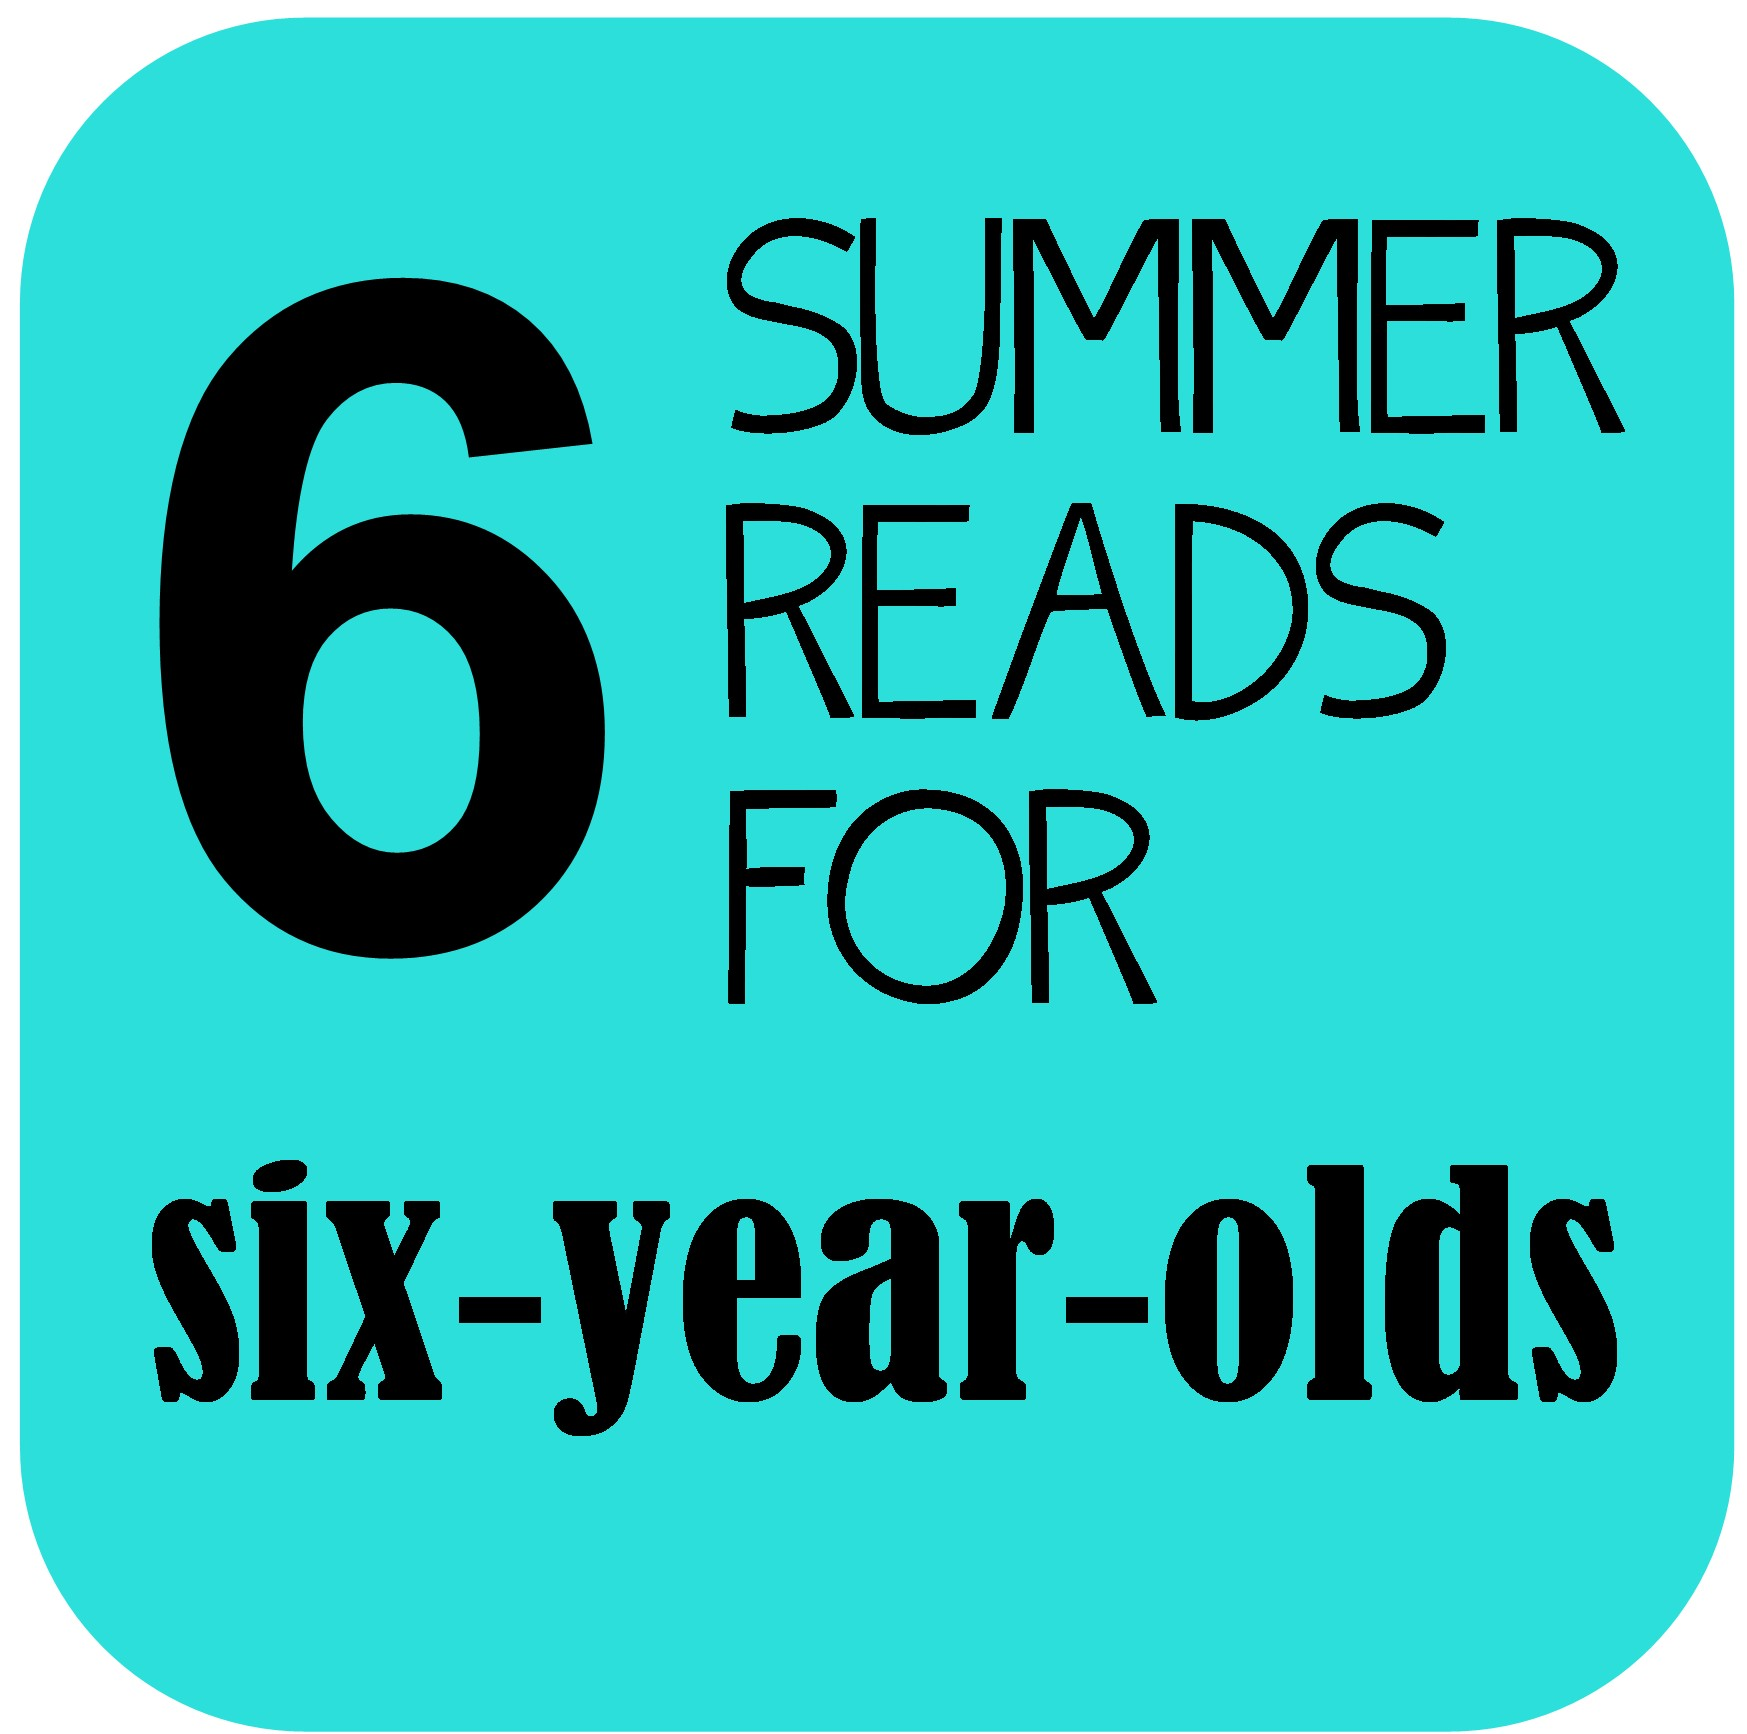 6 summer reads image